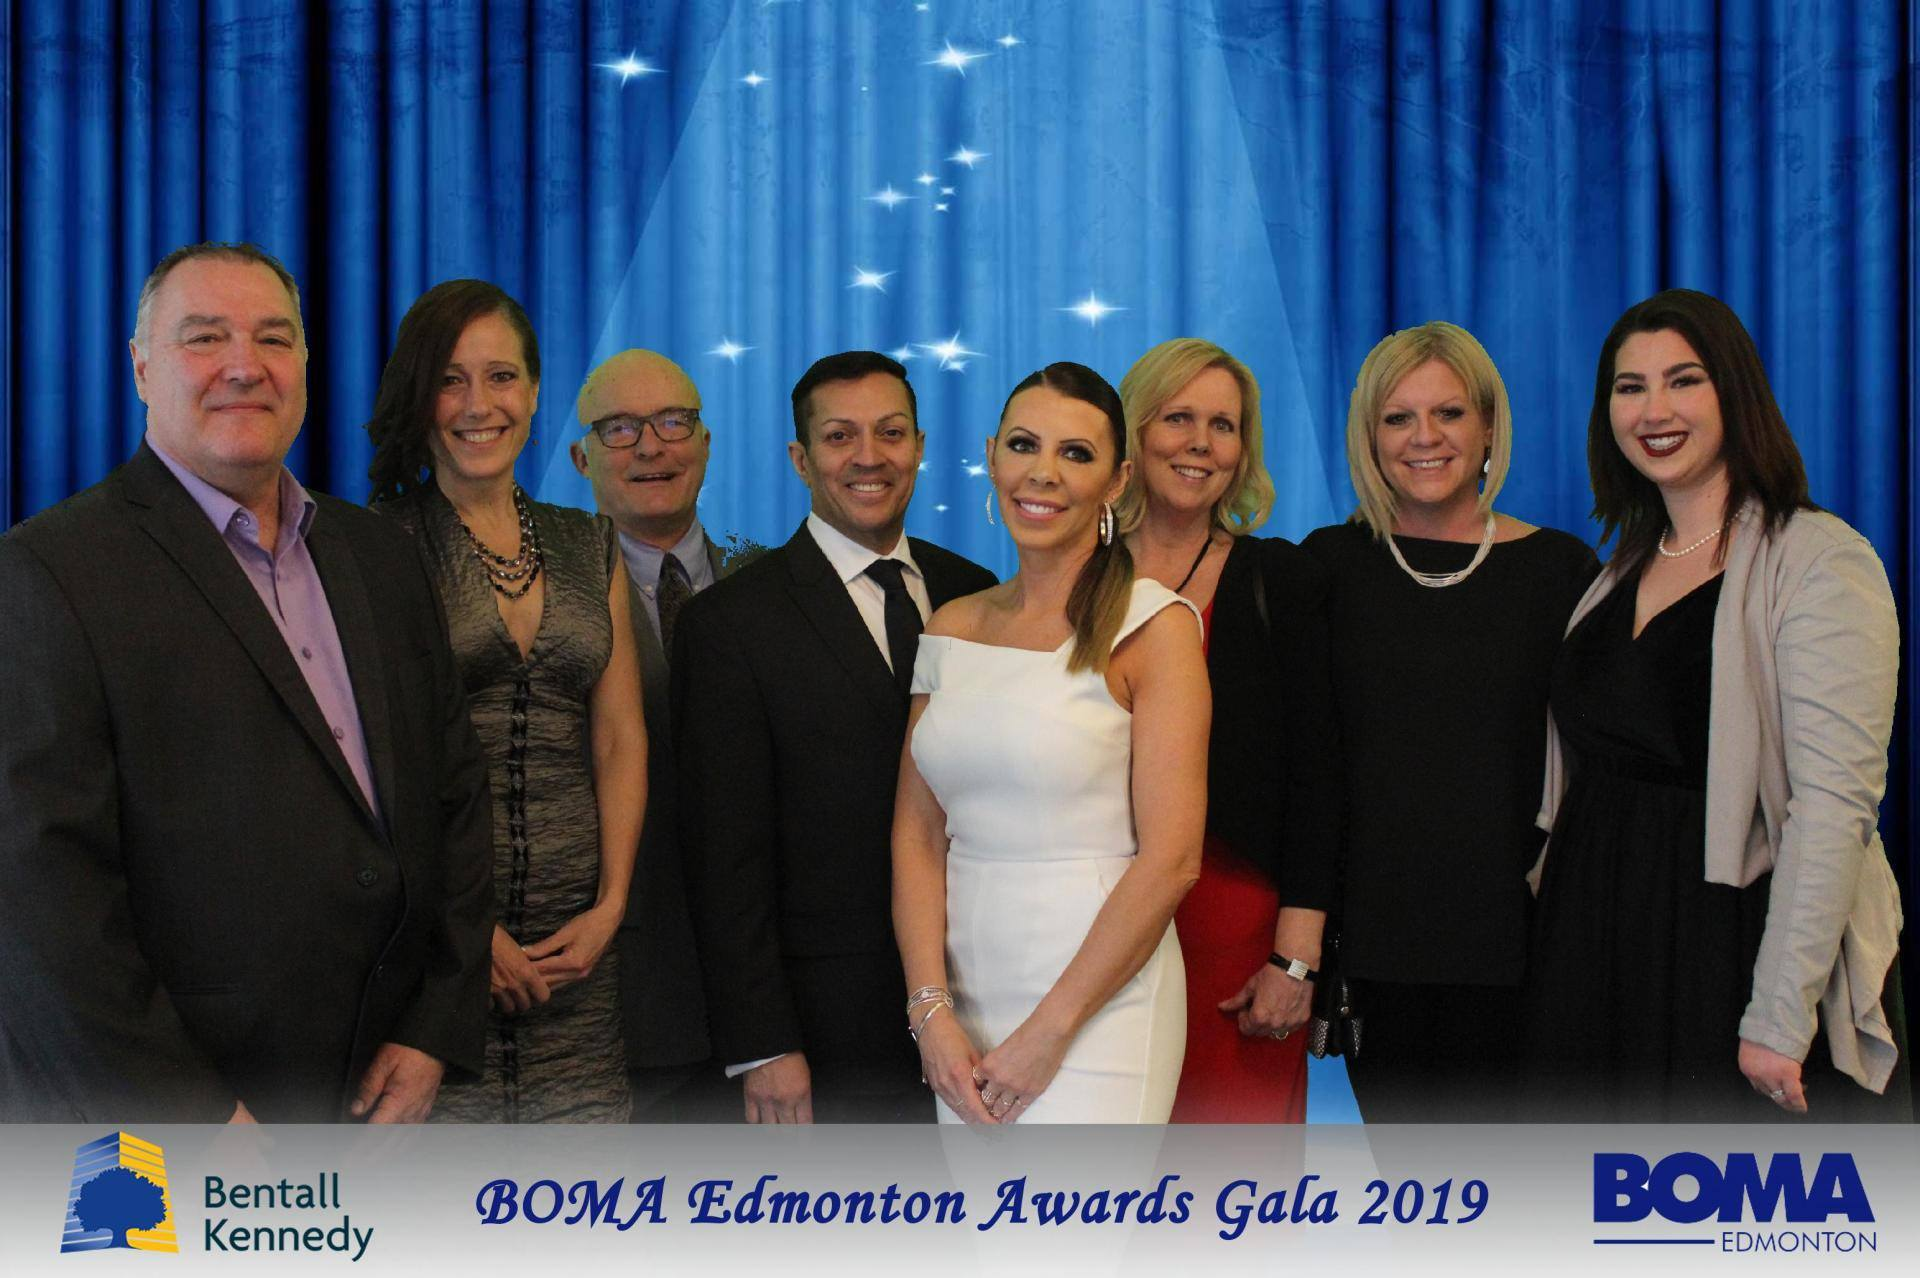 """Lloyd Mall is proud to be under the leadership group of Edmonton and we wish to congratulate our fellow teammates on winning the 2019 BOMA Pinnacle Award for Innovation""."